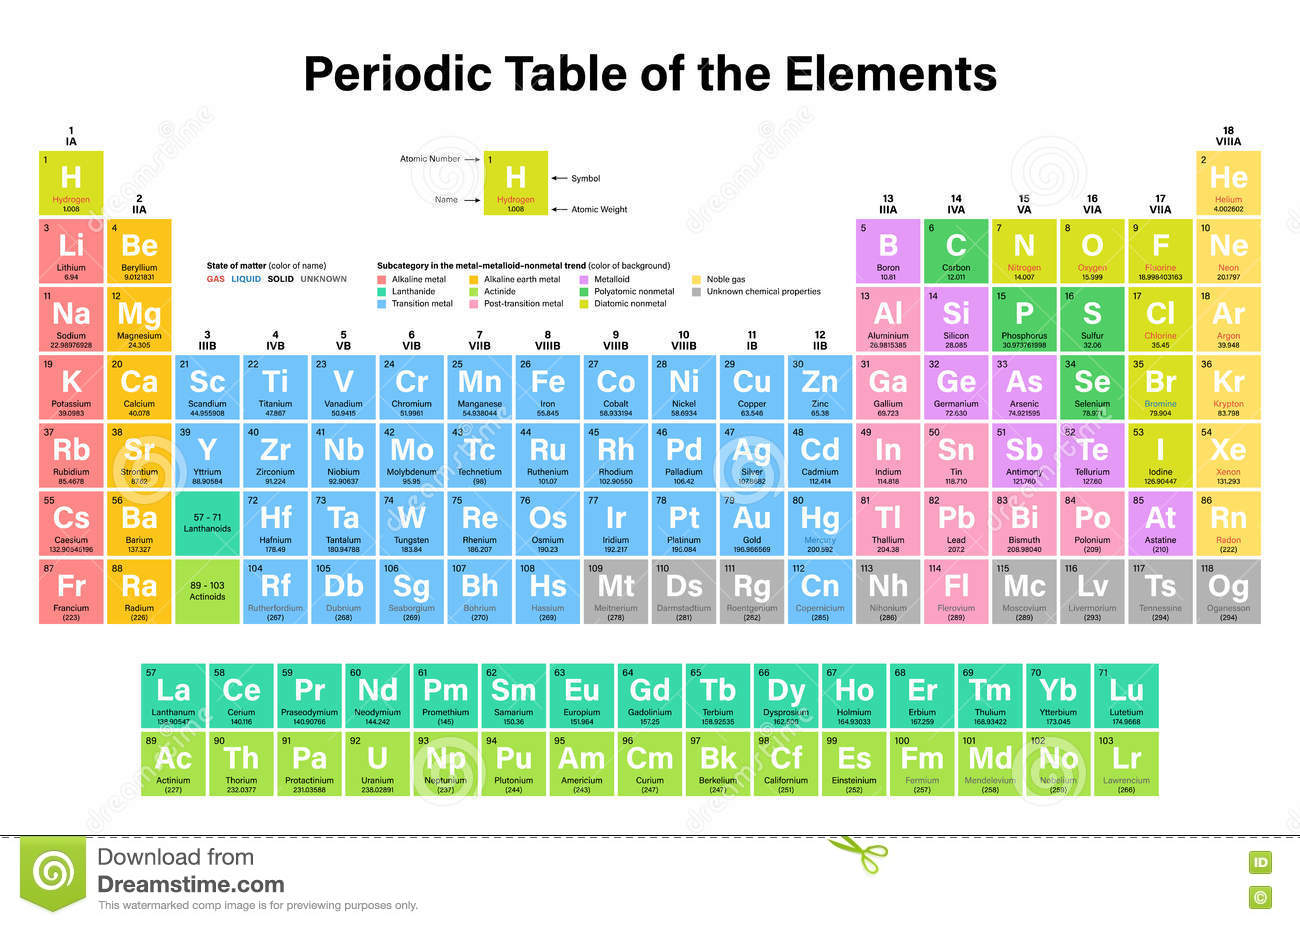 Periodic table of the elements colorful vector illustration stock periodic table of the elements colorful vector illustration gamestrikefo Image collections